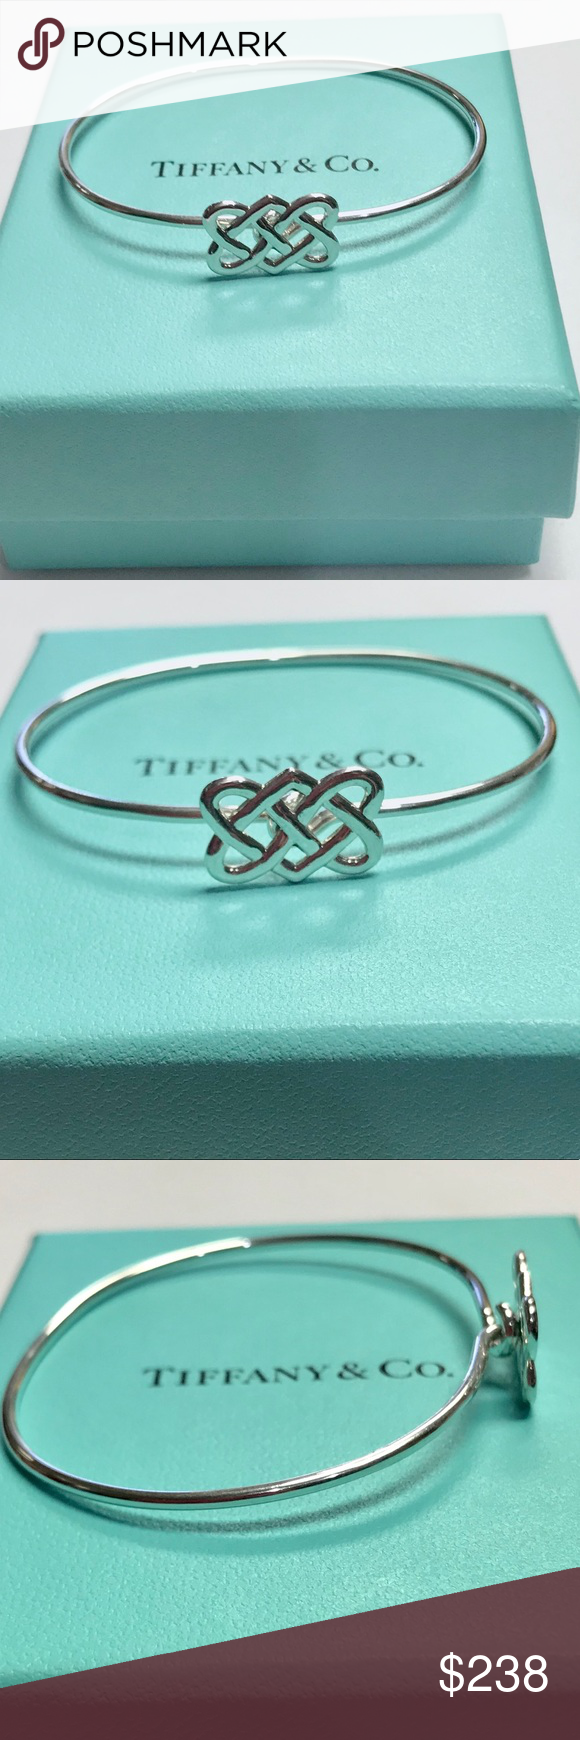 af043b5a3 Tiffany & Co Celtic Knot Vintage Bracelet This Tiffany & Co. Celtic Knot  bracelet was designed by Paloma Picasso and features sterling silver, ...